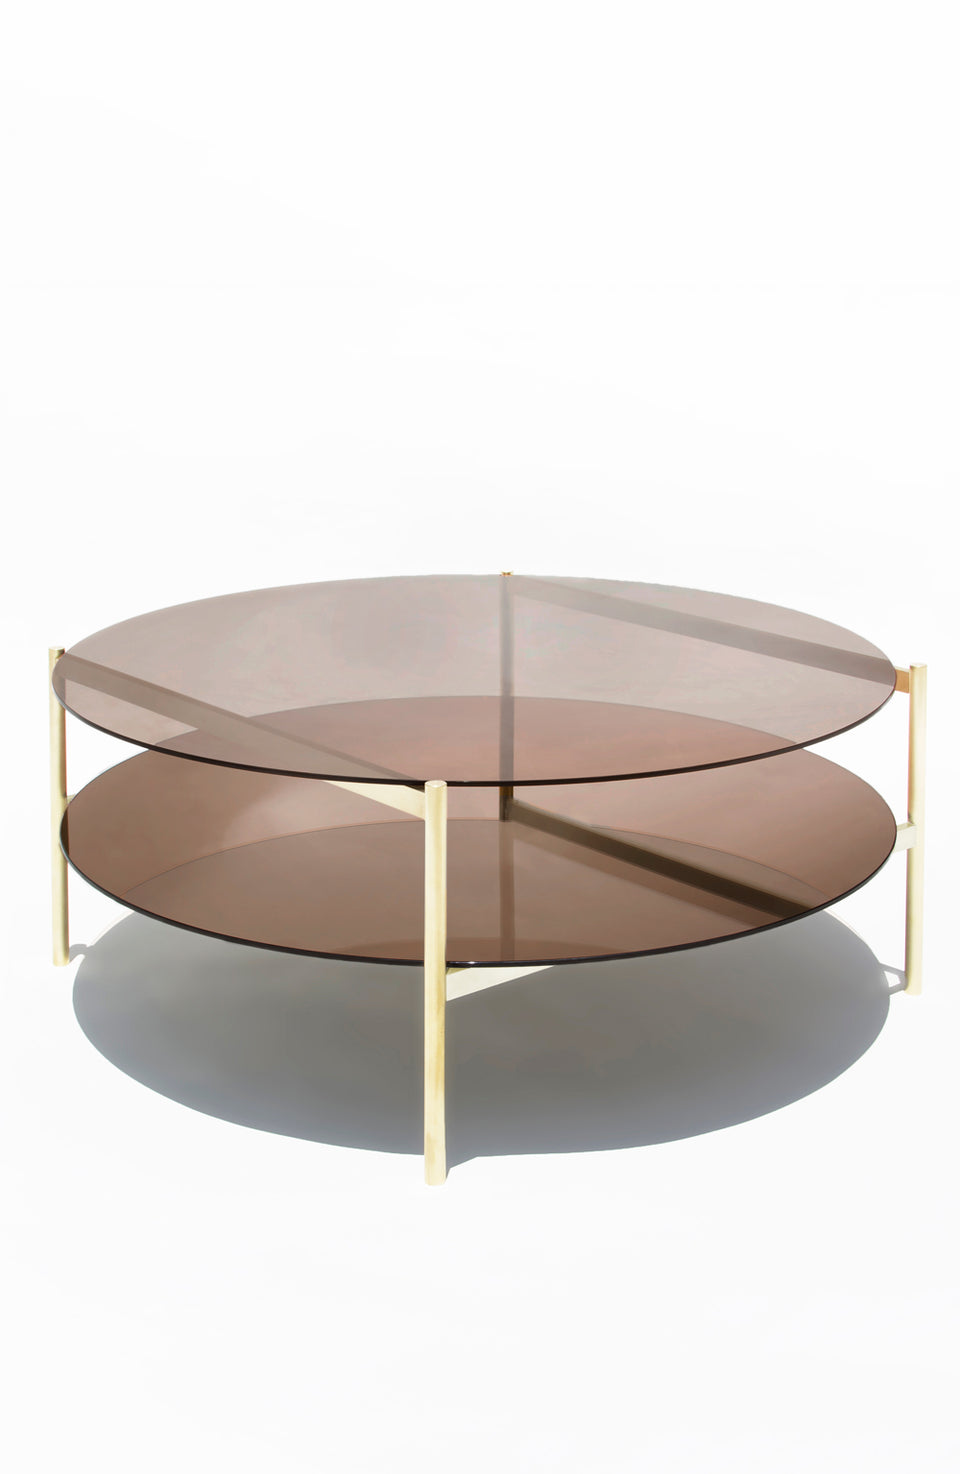 Duotone Circular Coffee Table Brass Frame Bronze Glass